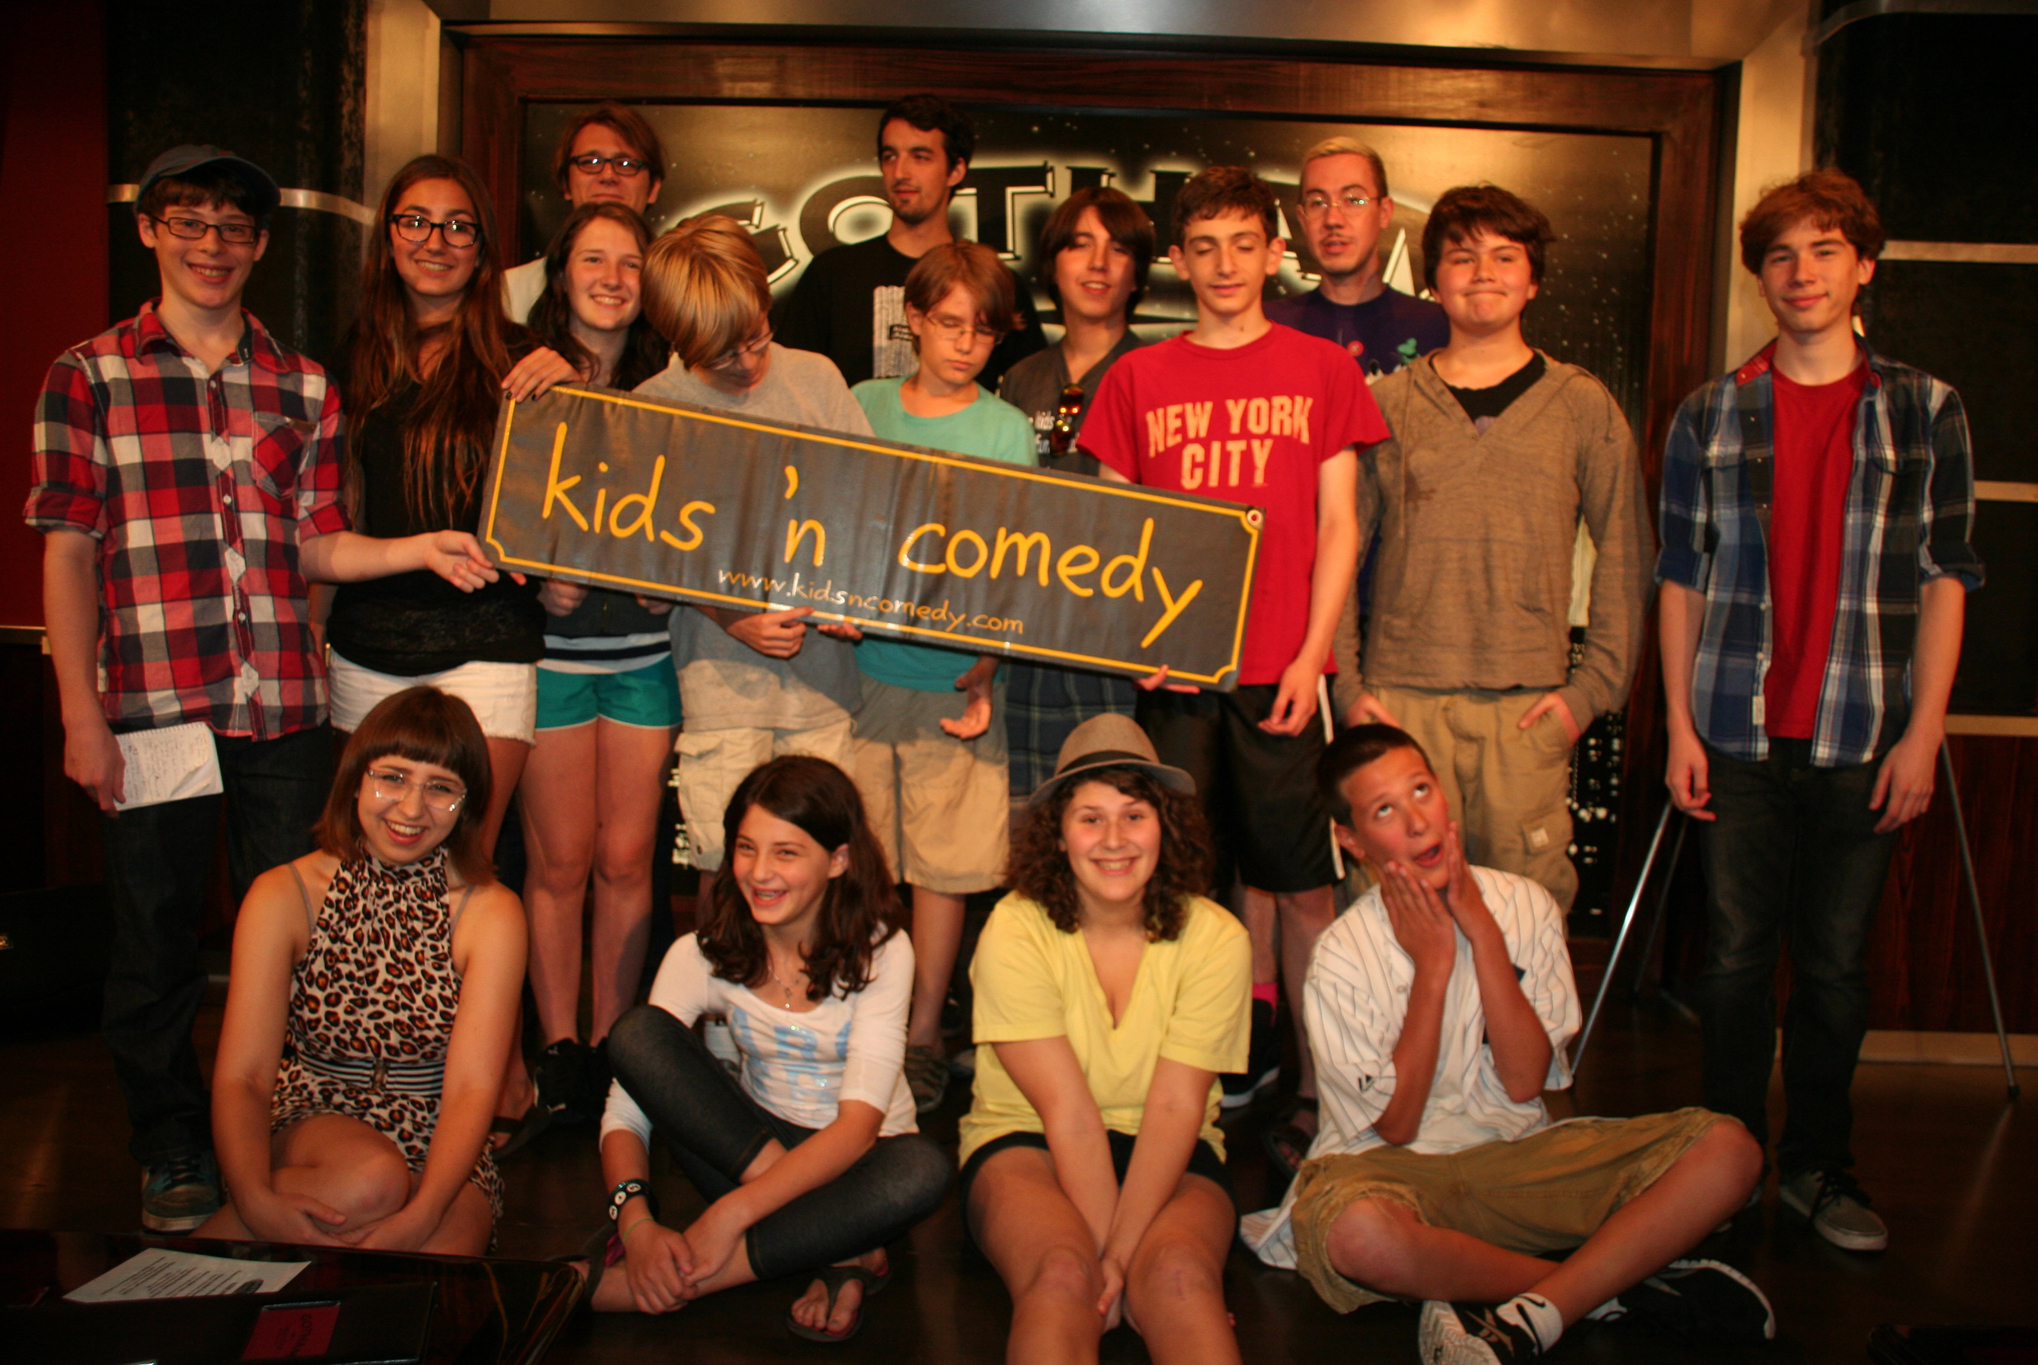 Camp Kids 'N Comedy